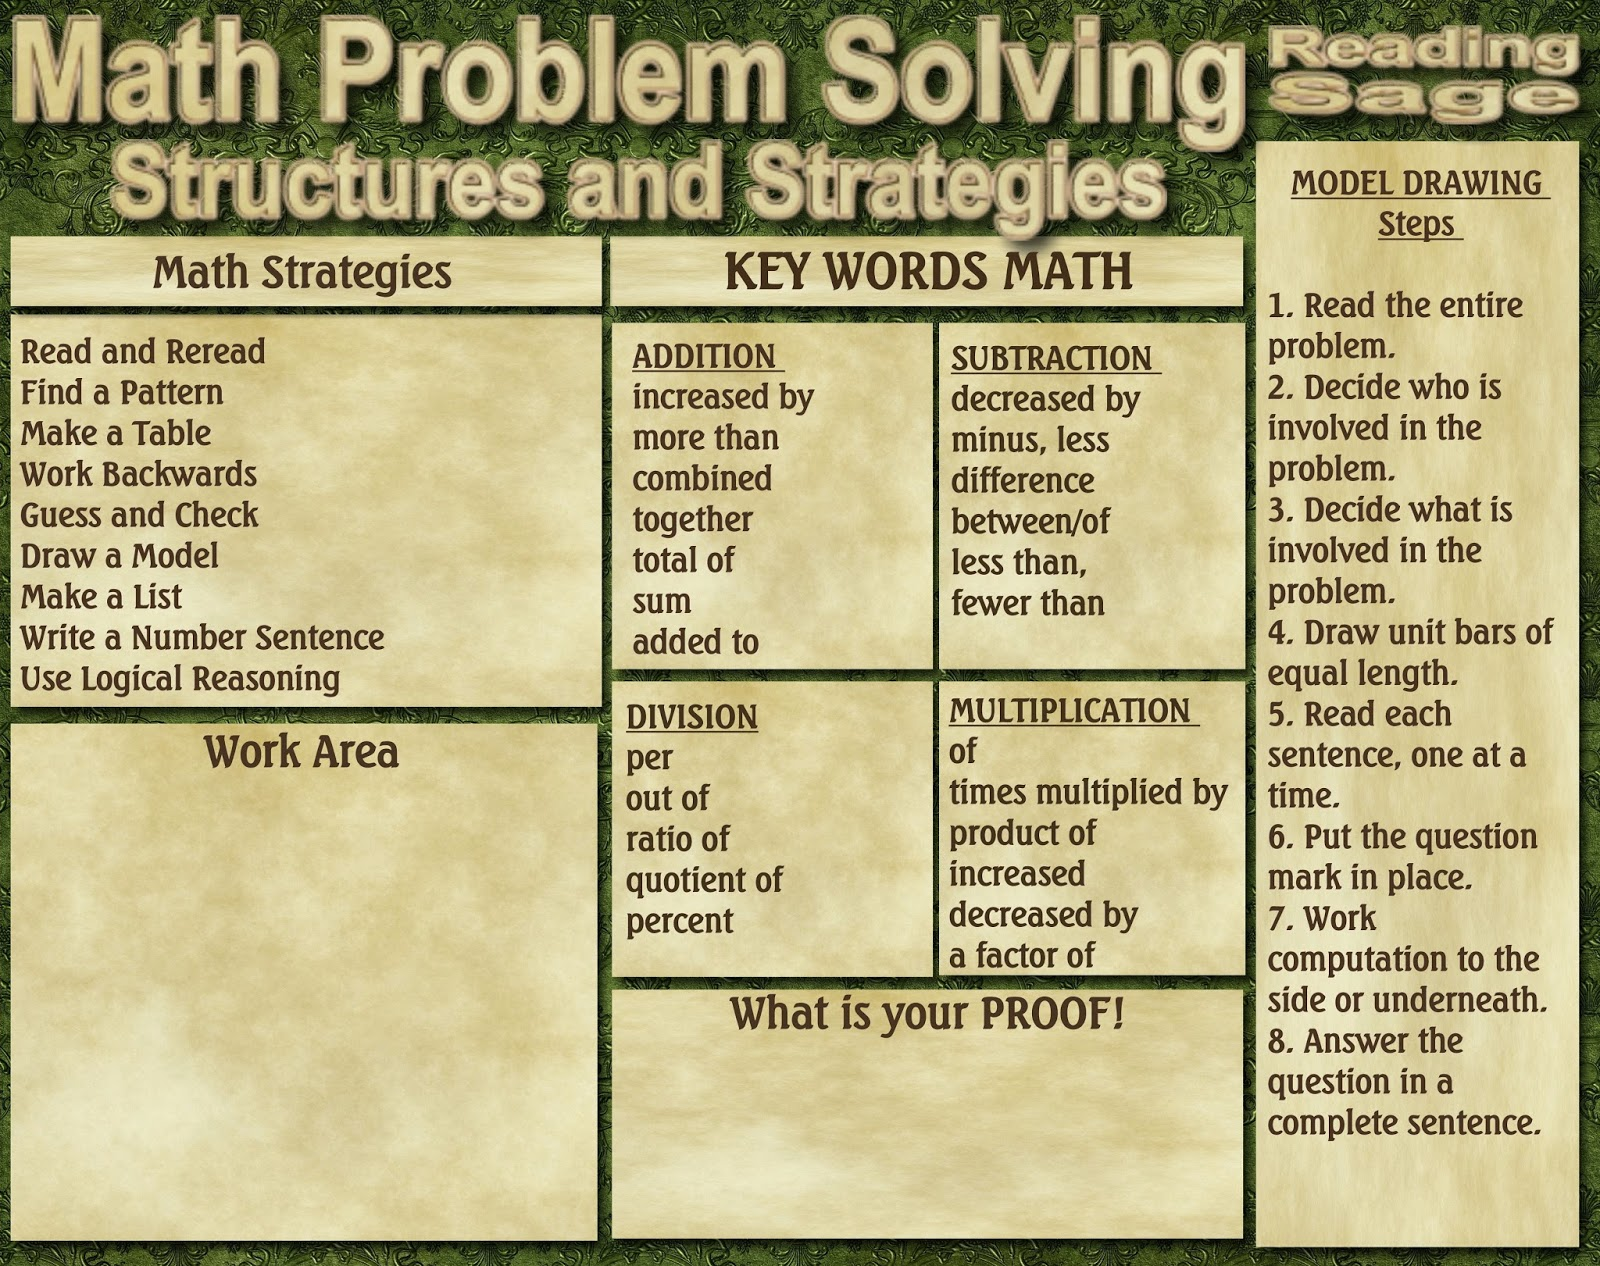 Critical thinking math problems 5th grade